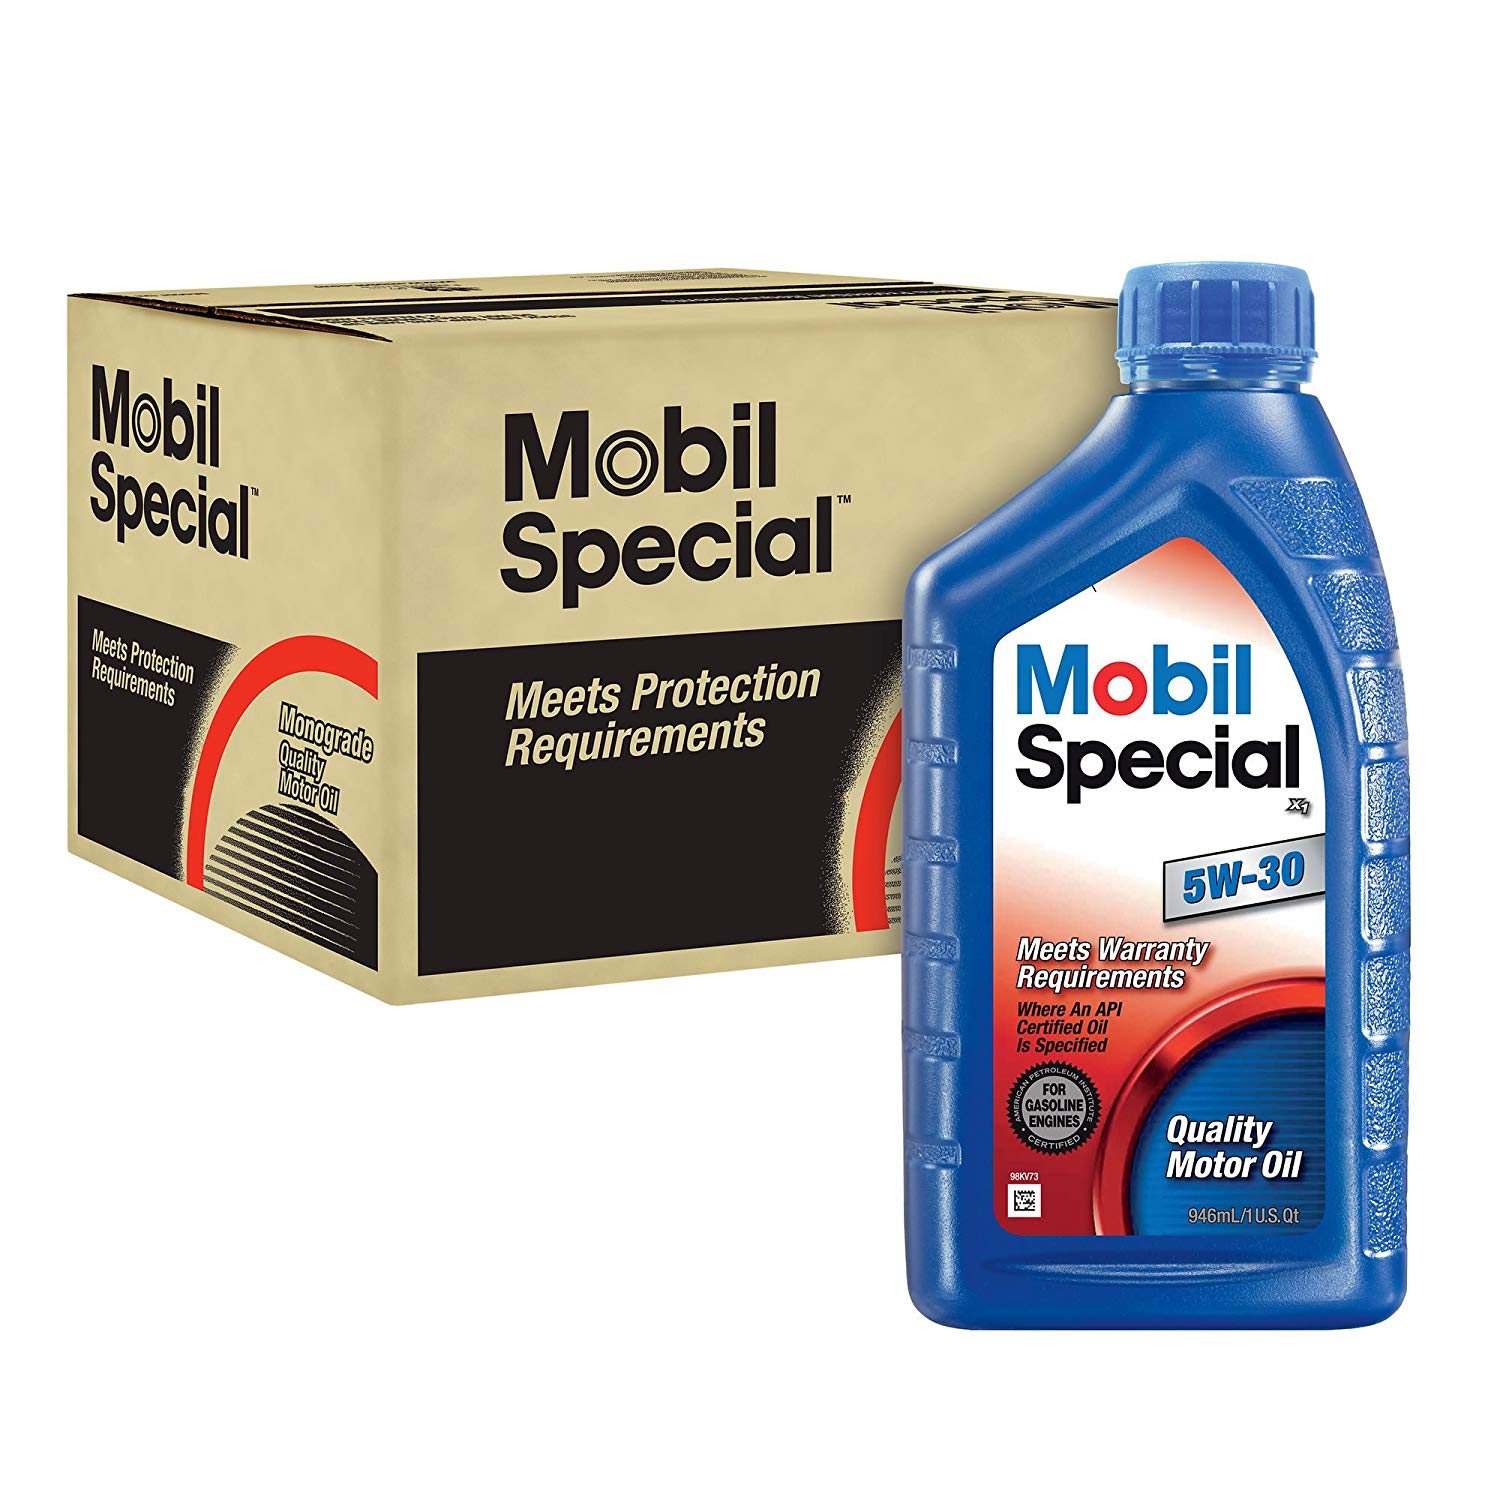 Cheap Mobil Gear Oils, find Mobil Gear Oils deals on line at